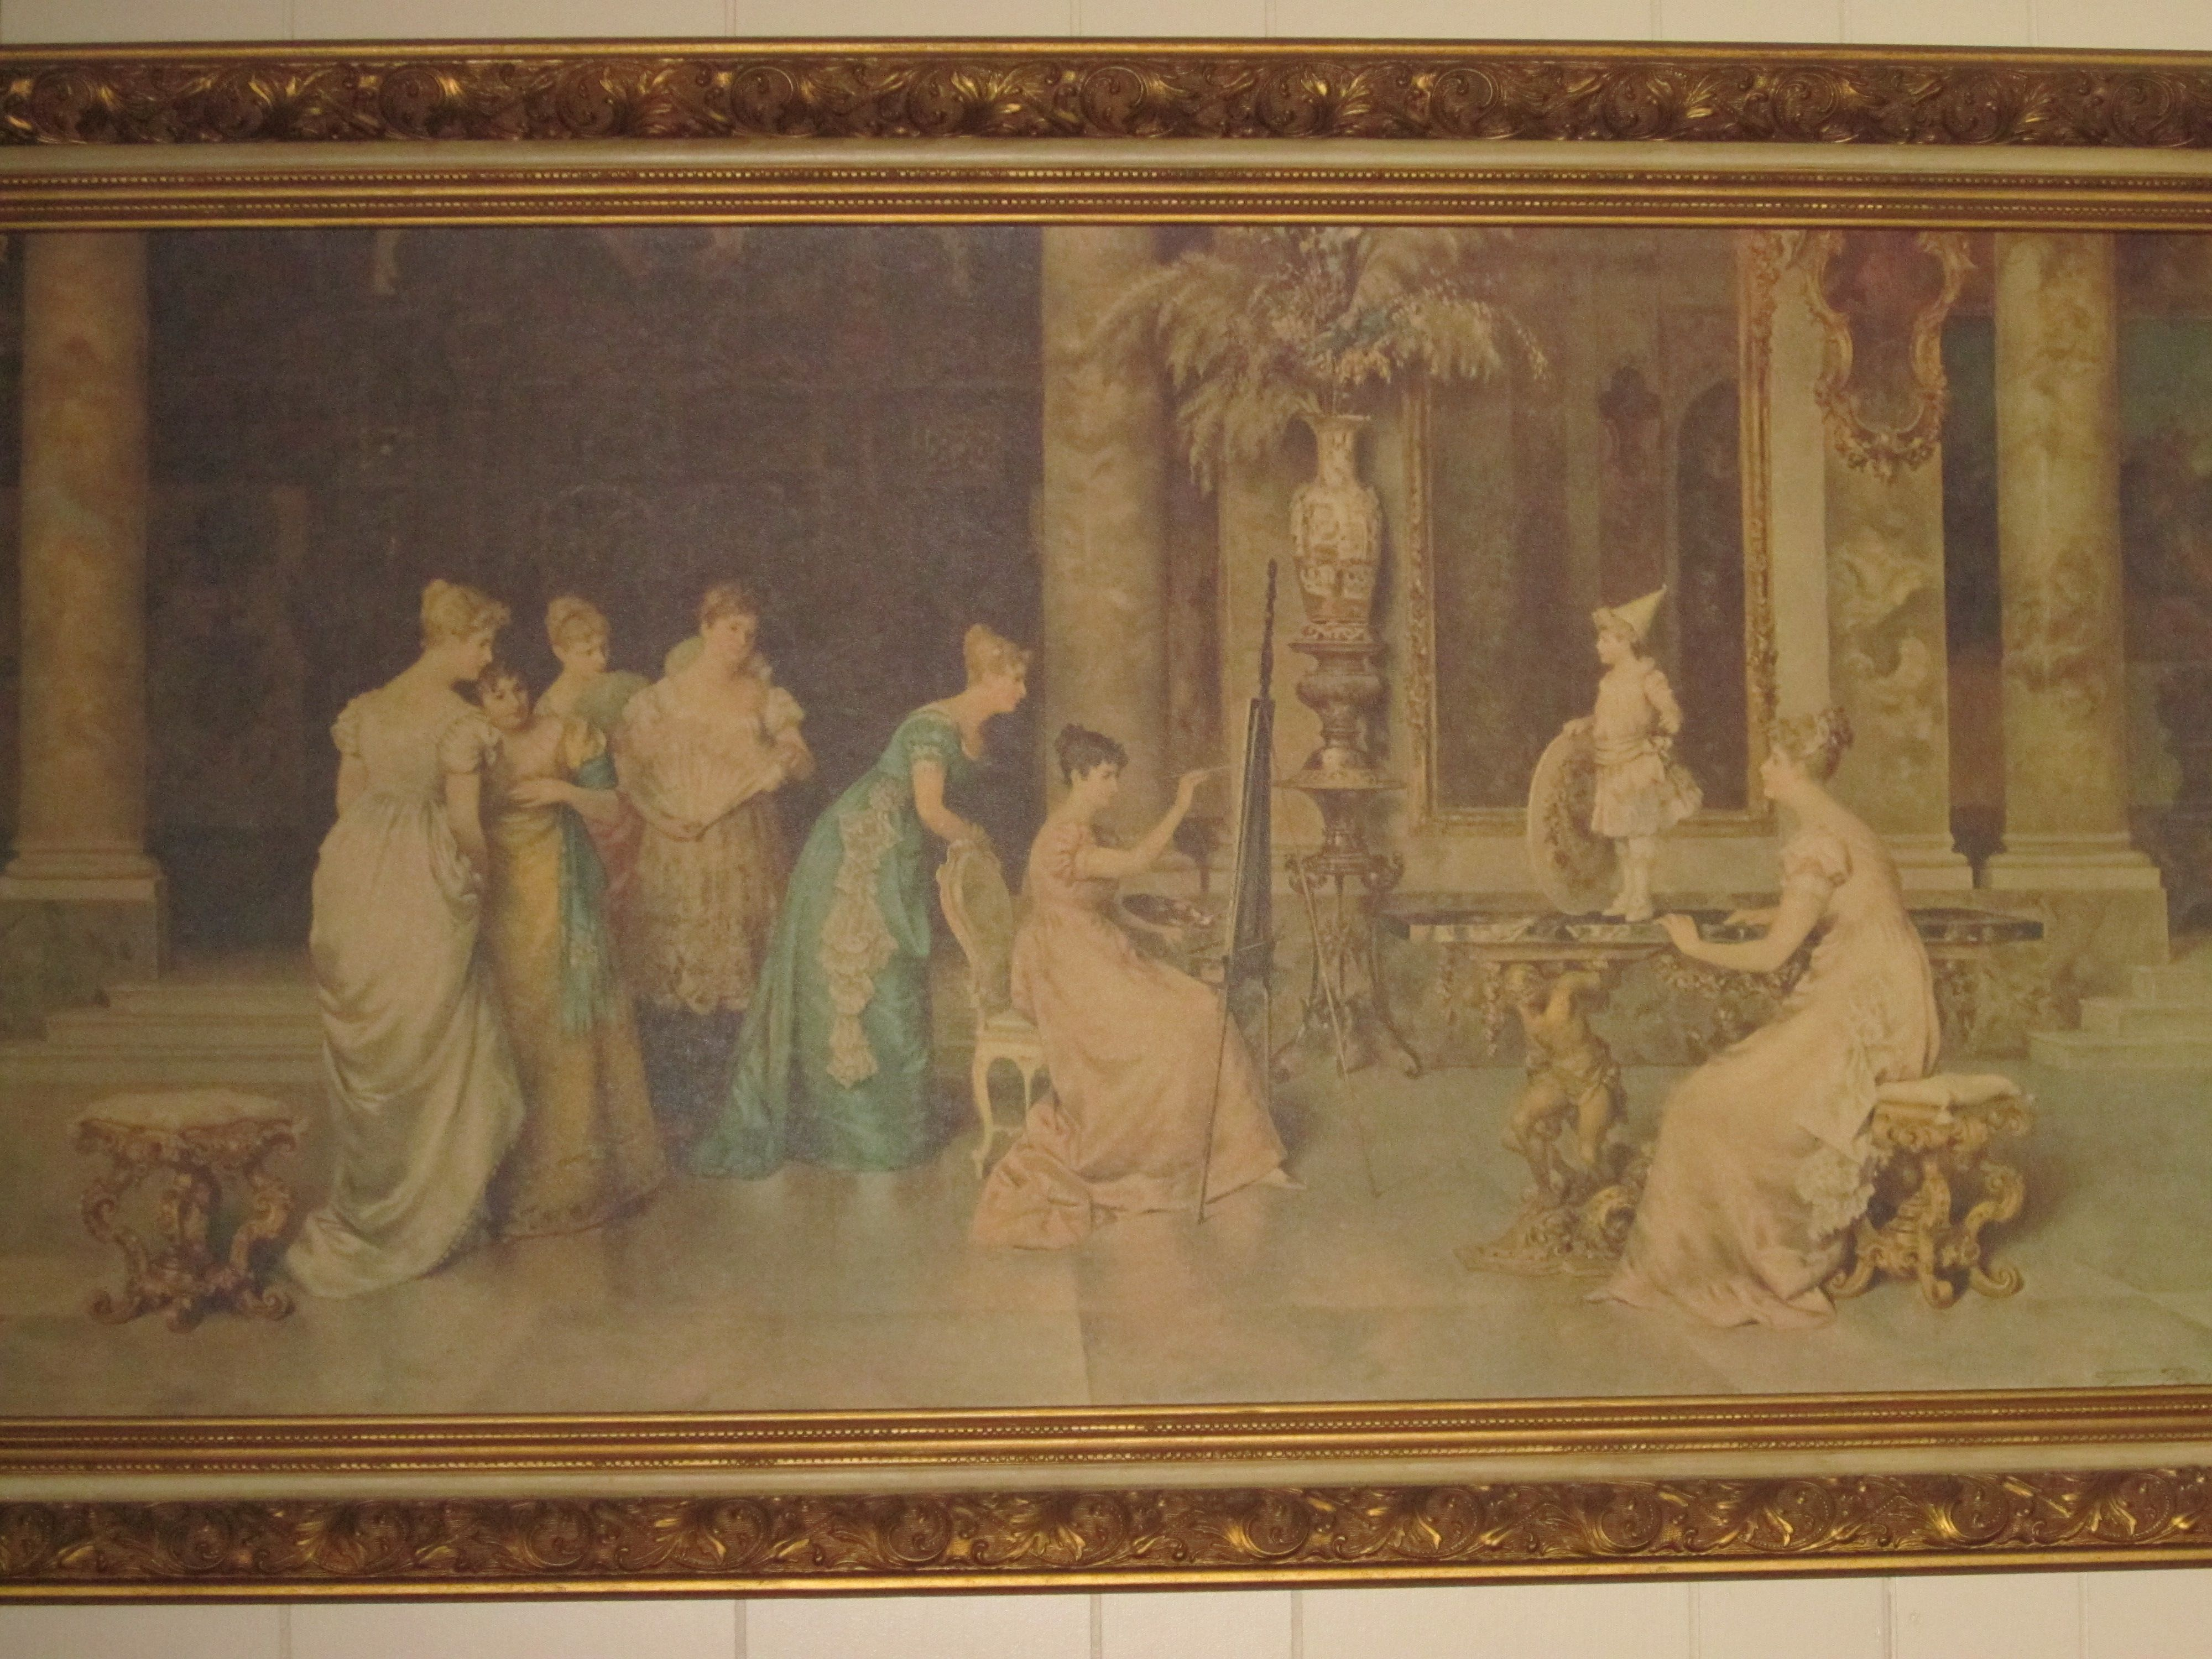 This Is The Painting That Hangs In My Livingroom It Is By Franceso